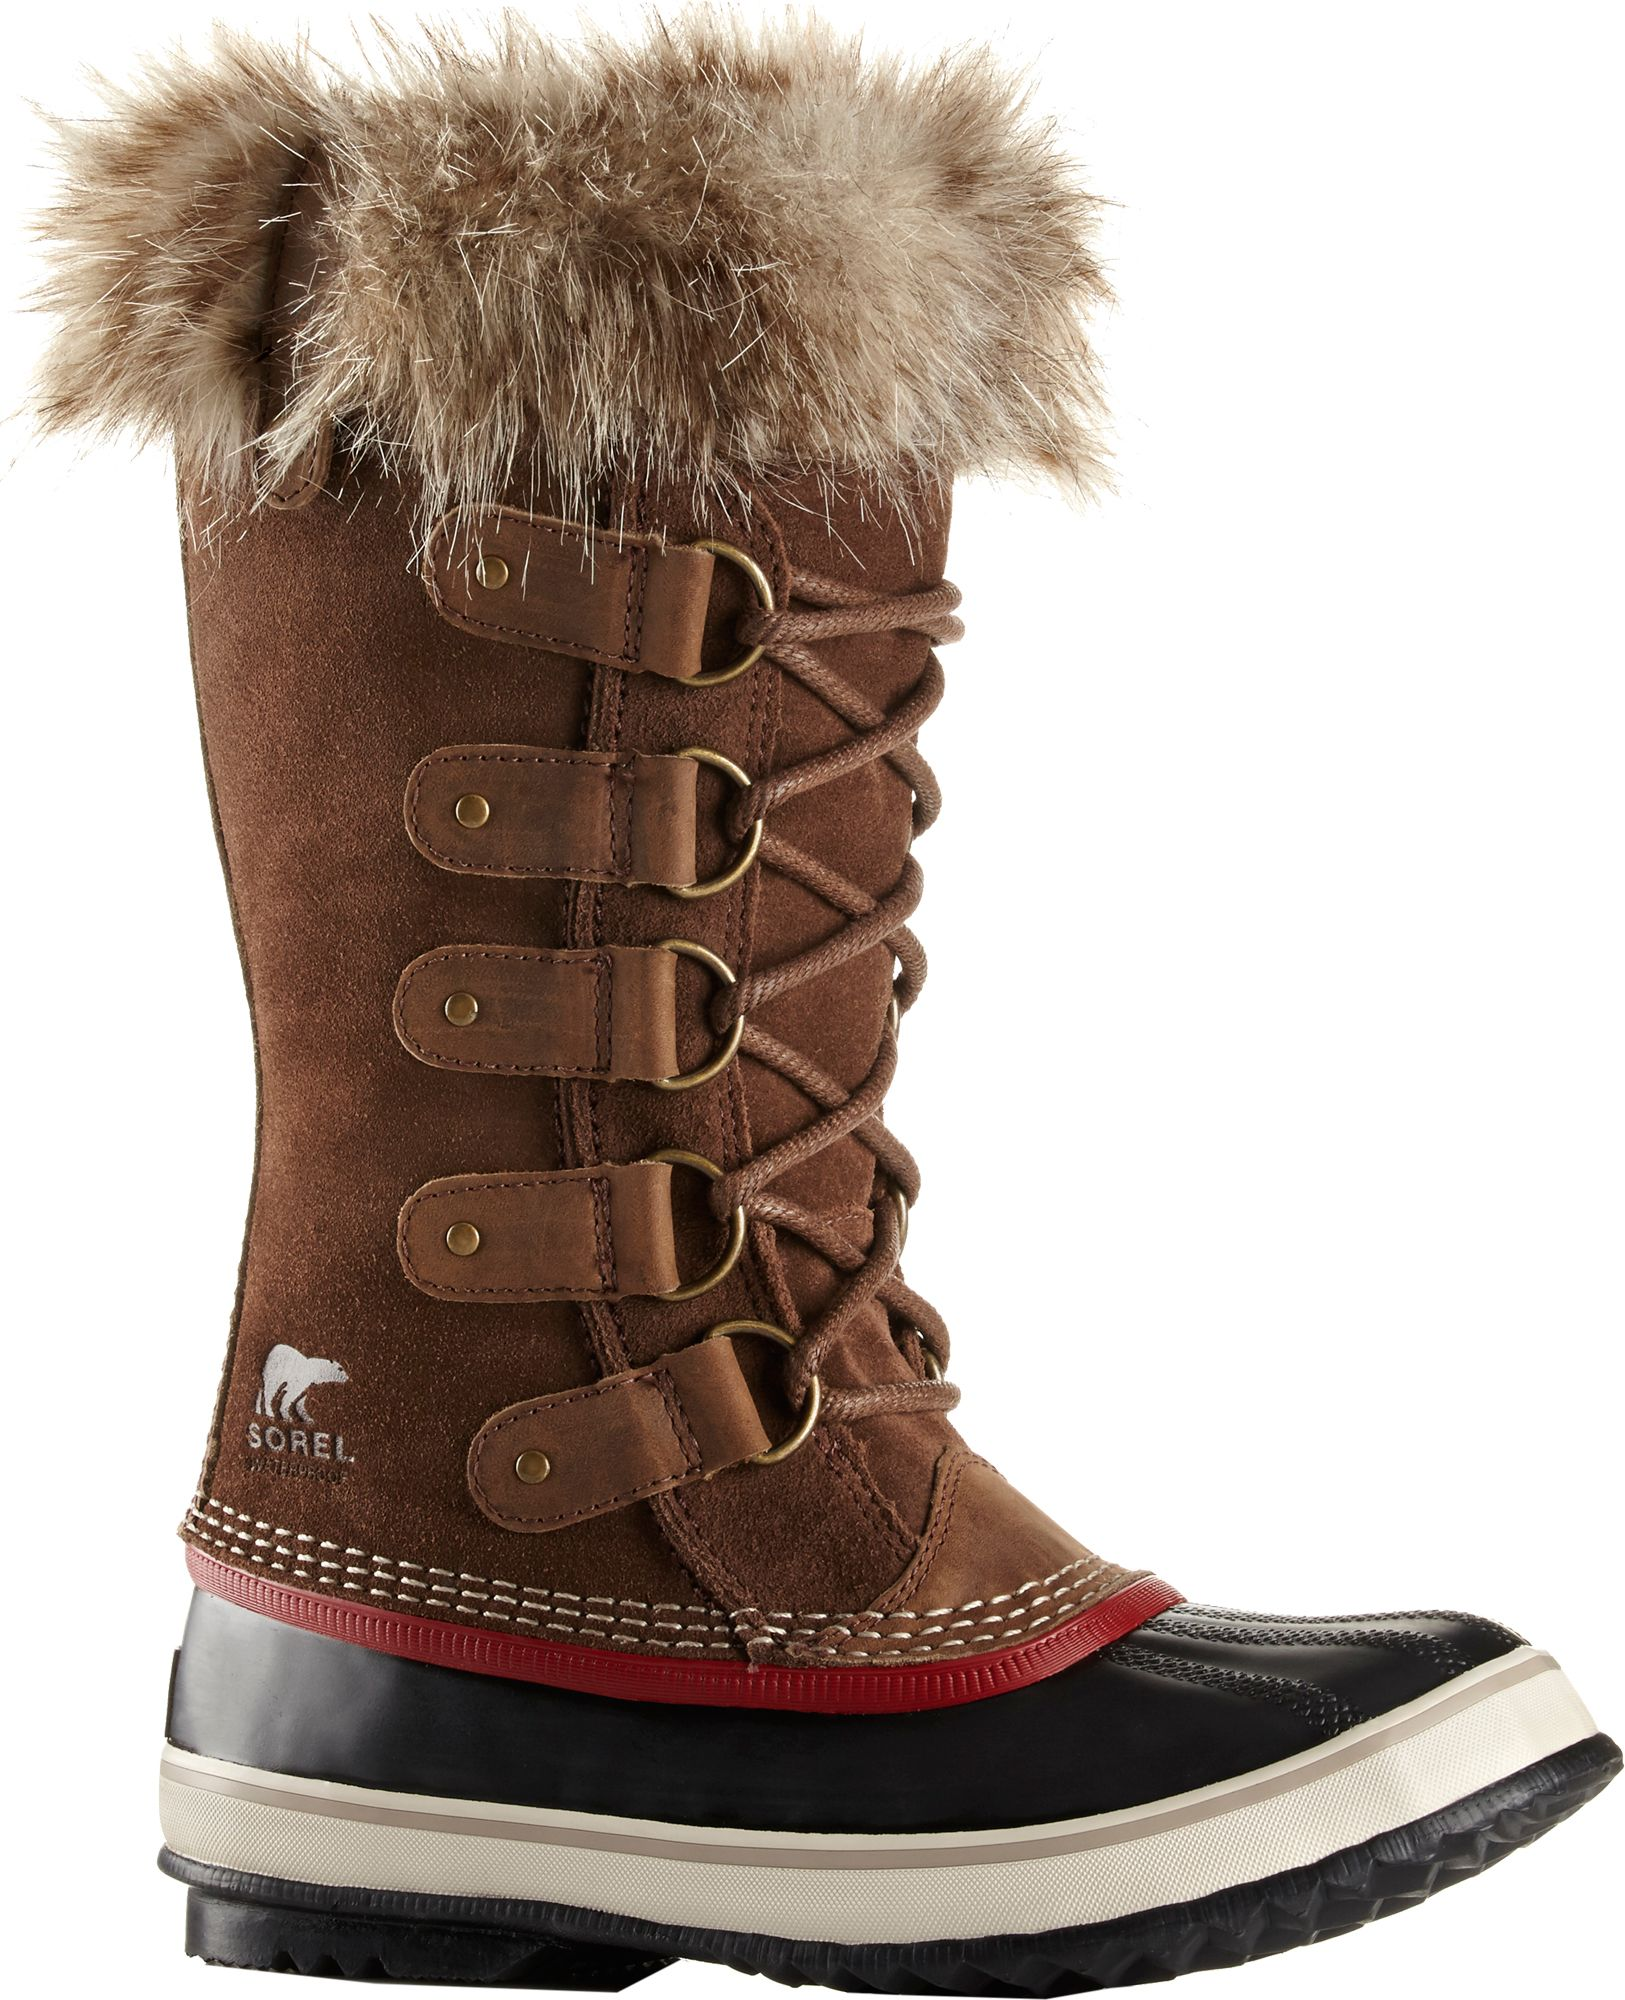 Sorel Suede Shearling-Trimmed Snow Boots